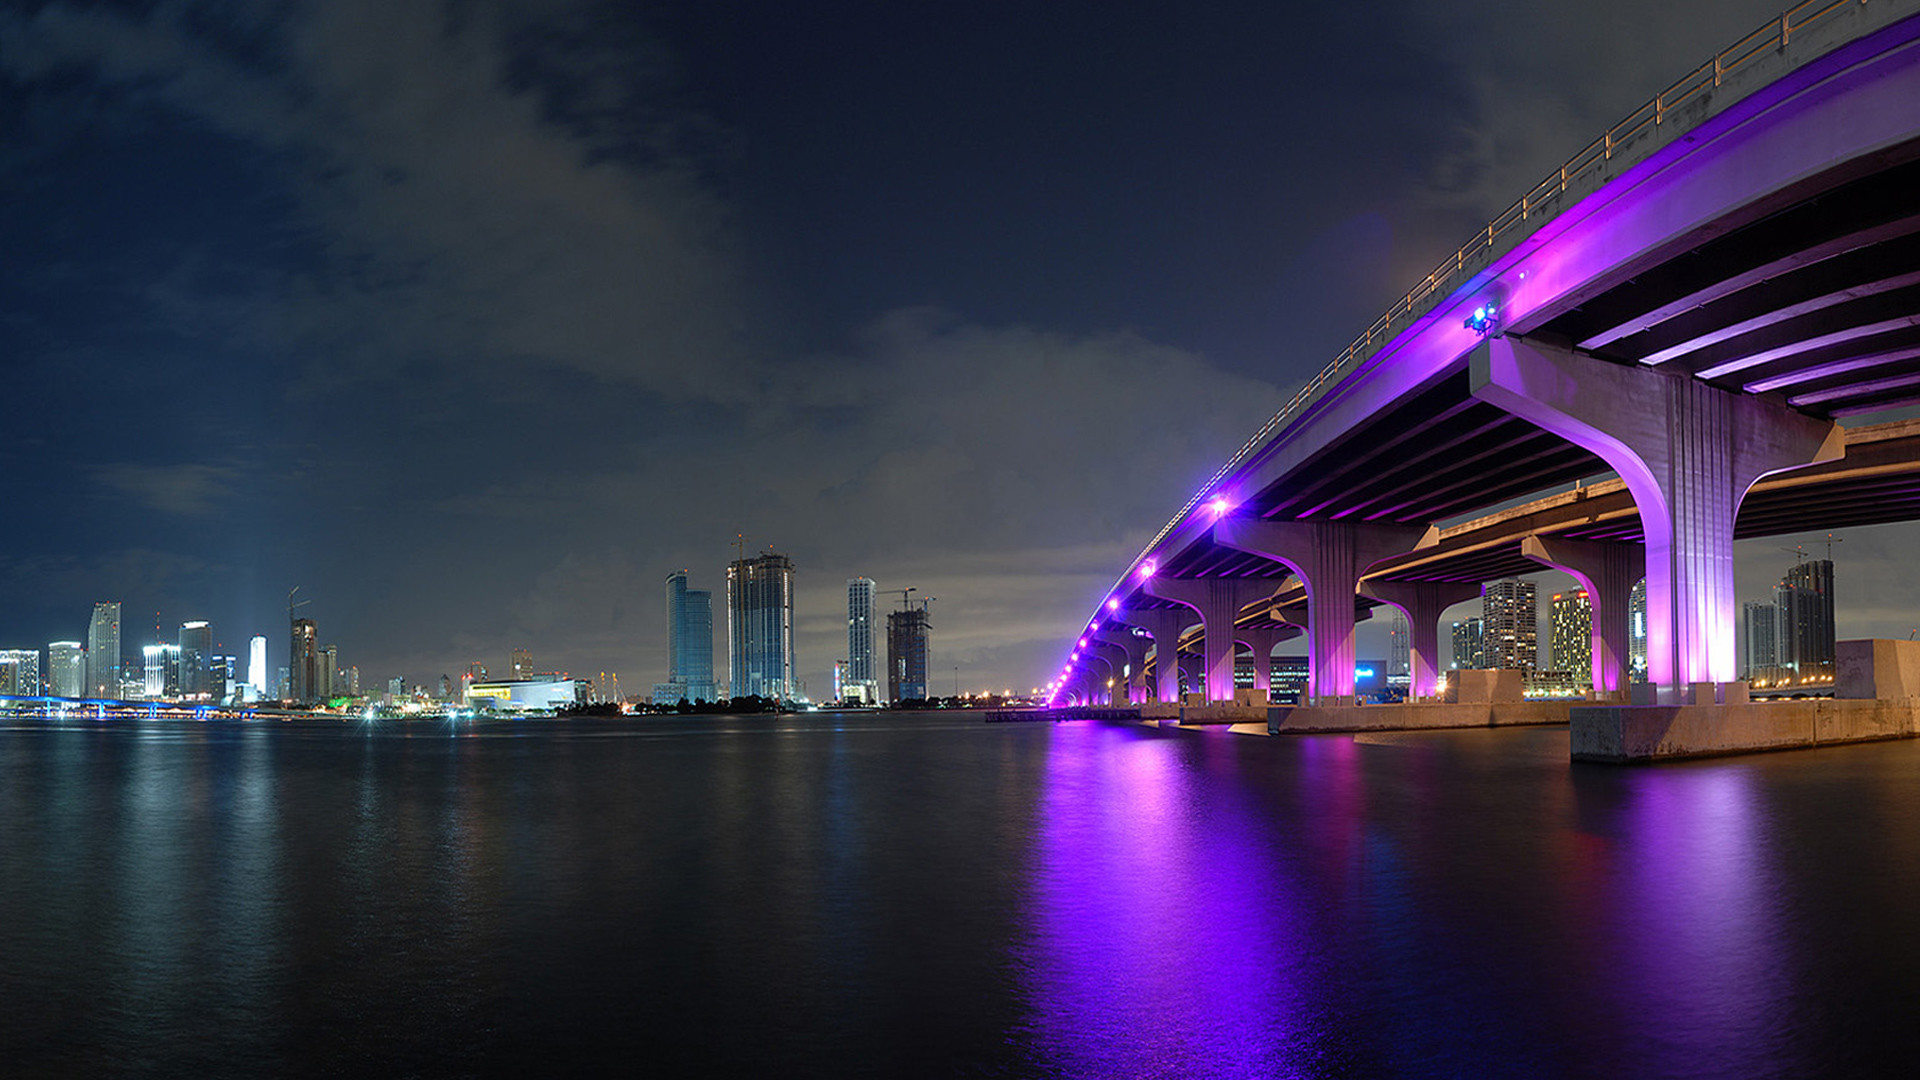 Miami City Wallpapers   HD Wallpapers